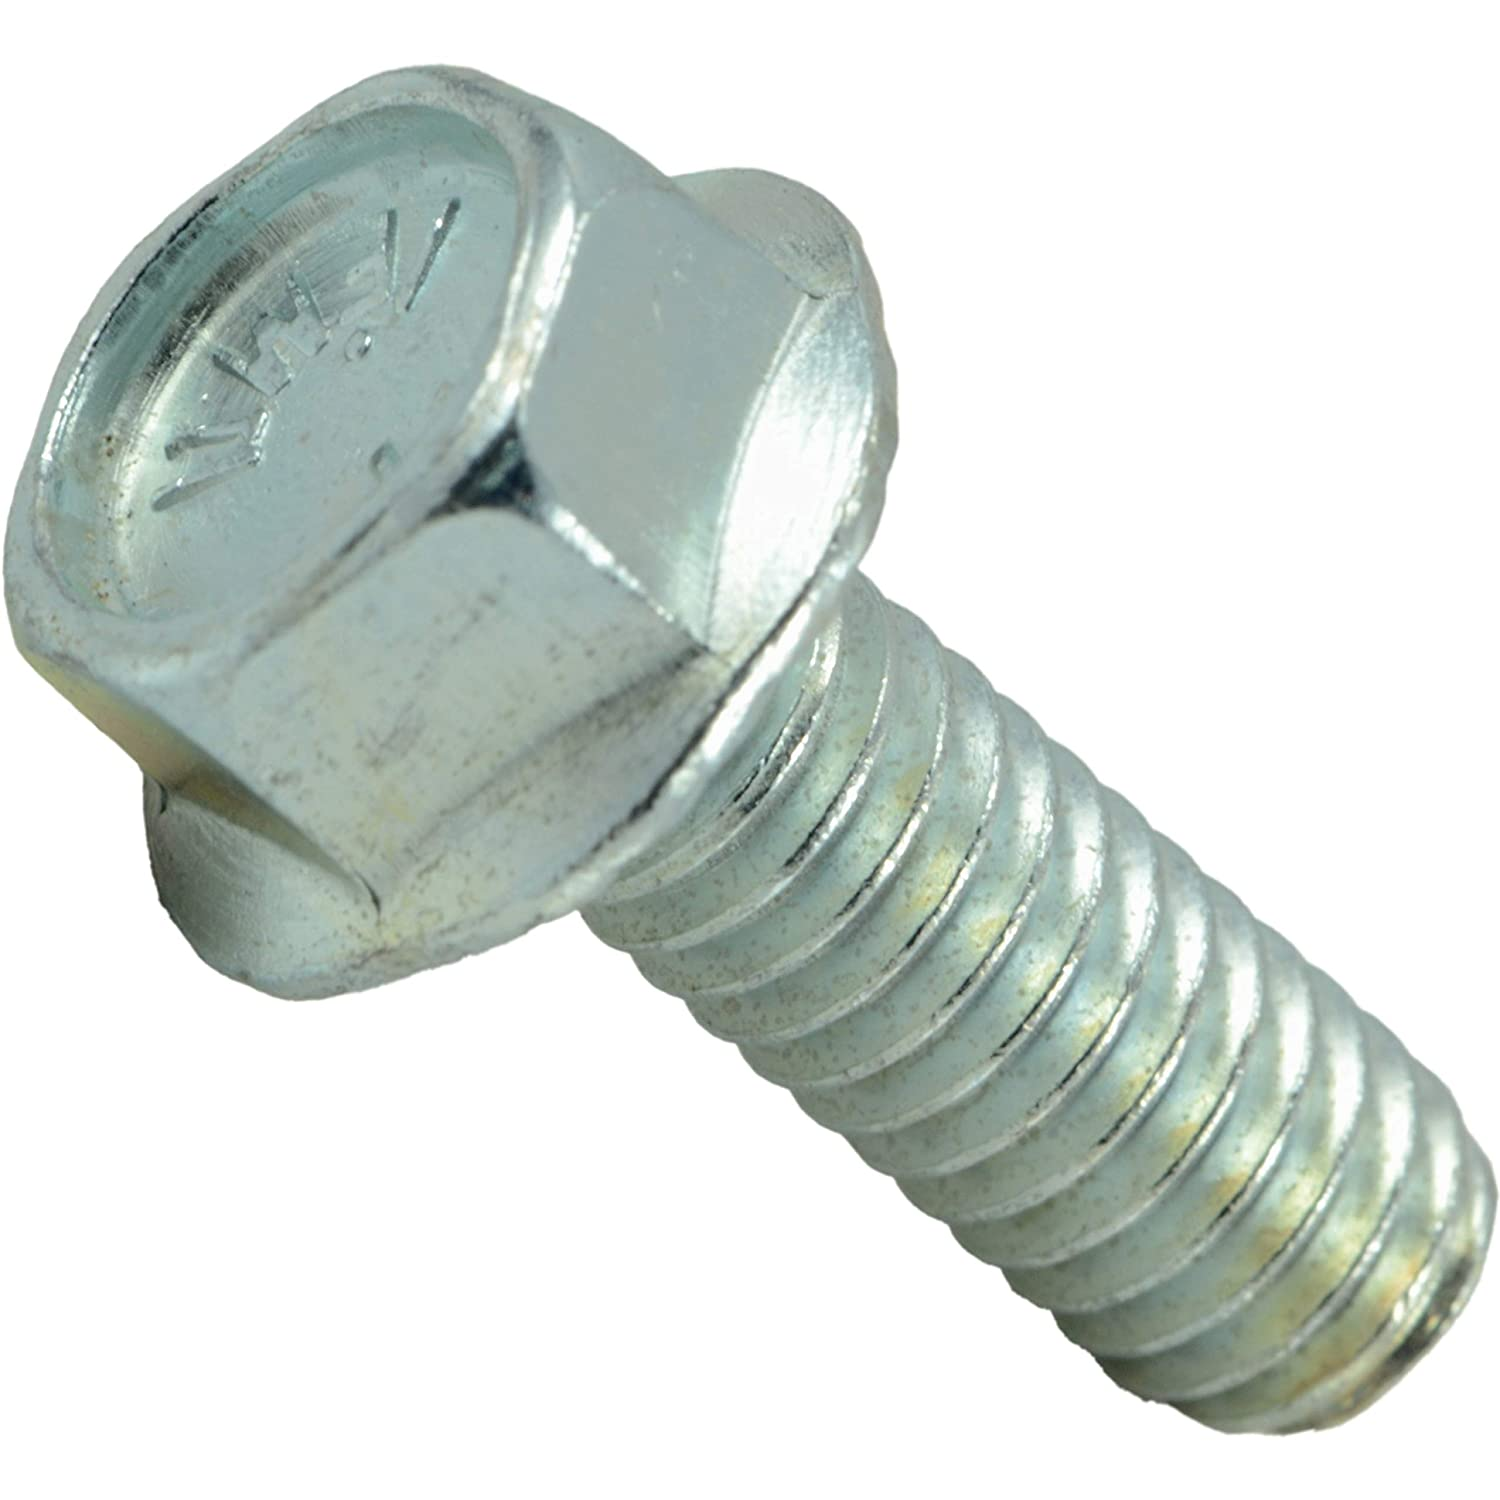 Hard-to-Find Fastener 014973454500 Serrated Flange Bolts 5//16-18 x 7//8 Piece-10